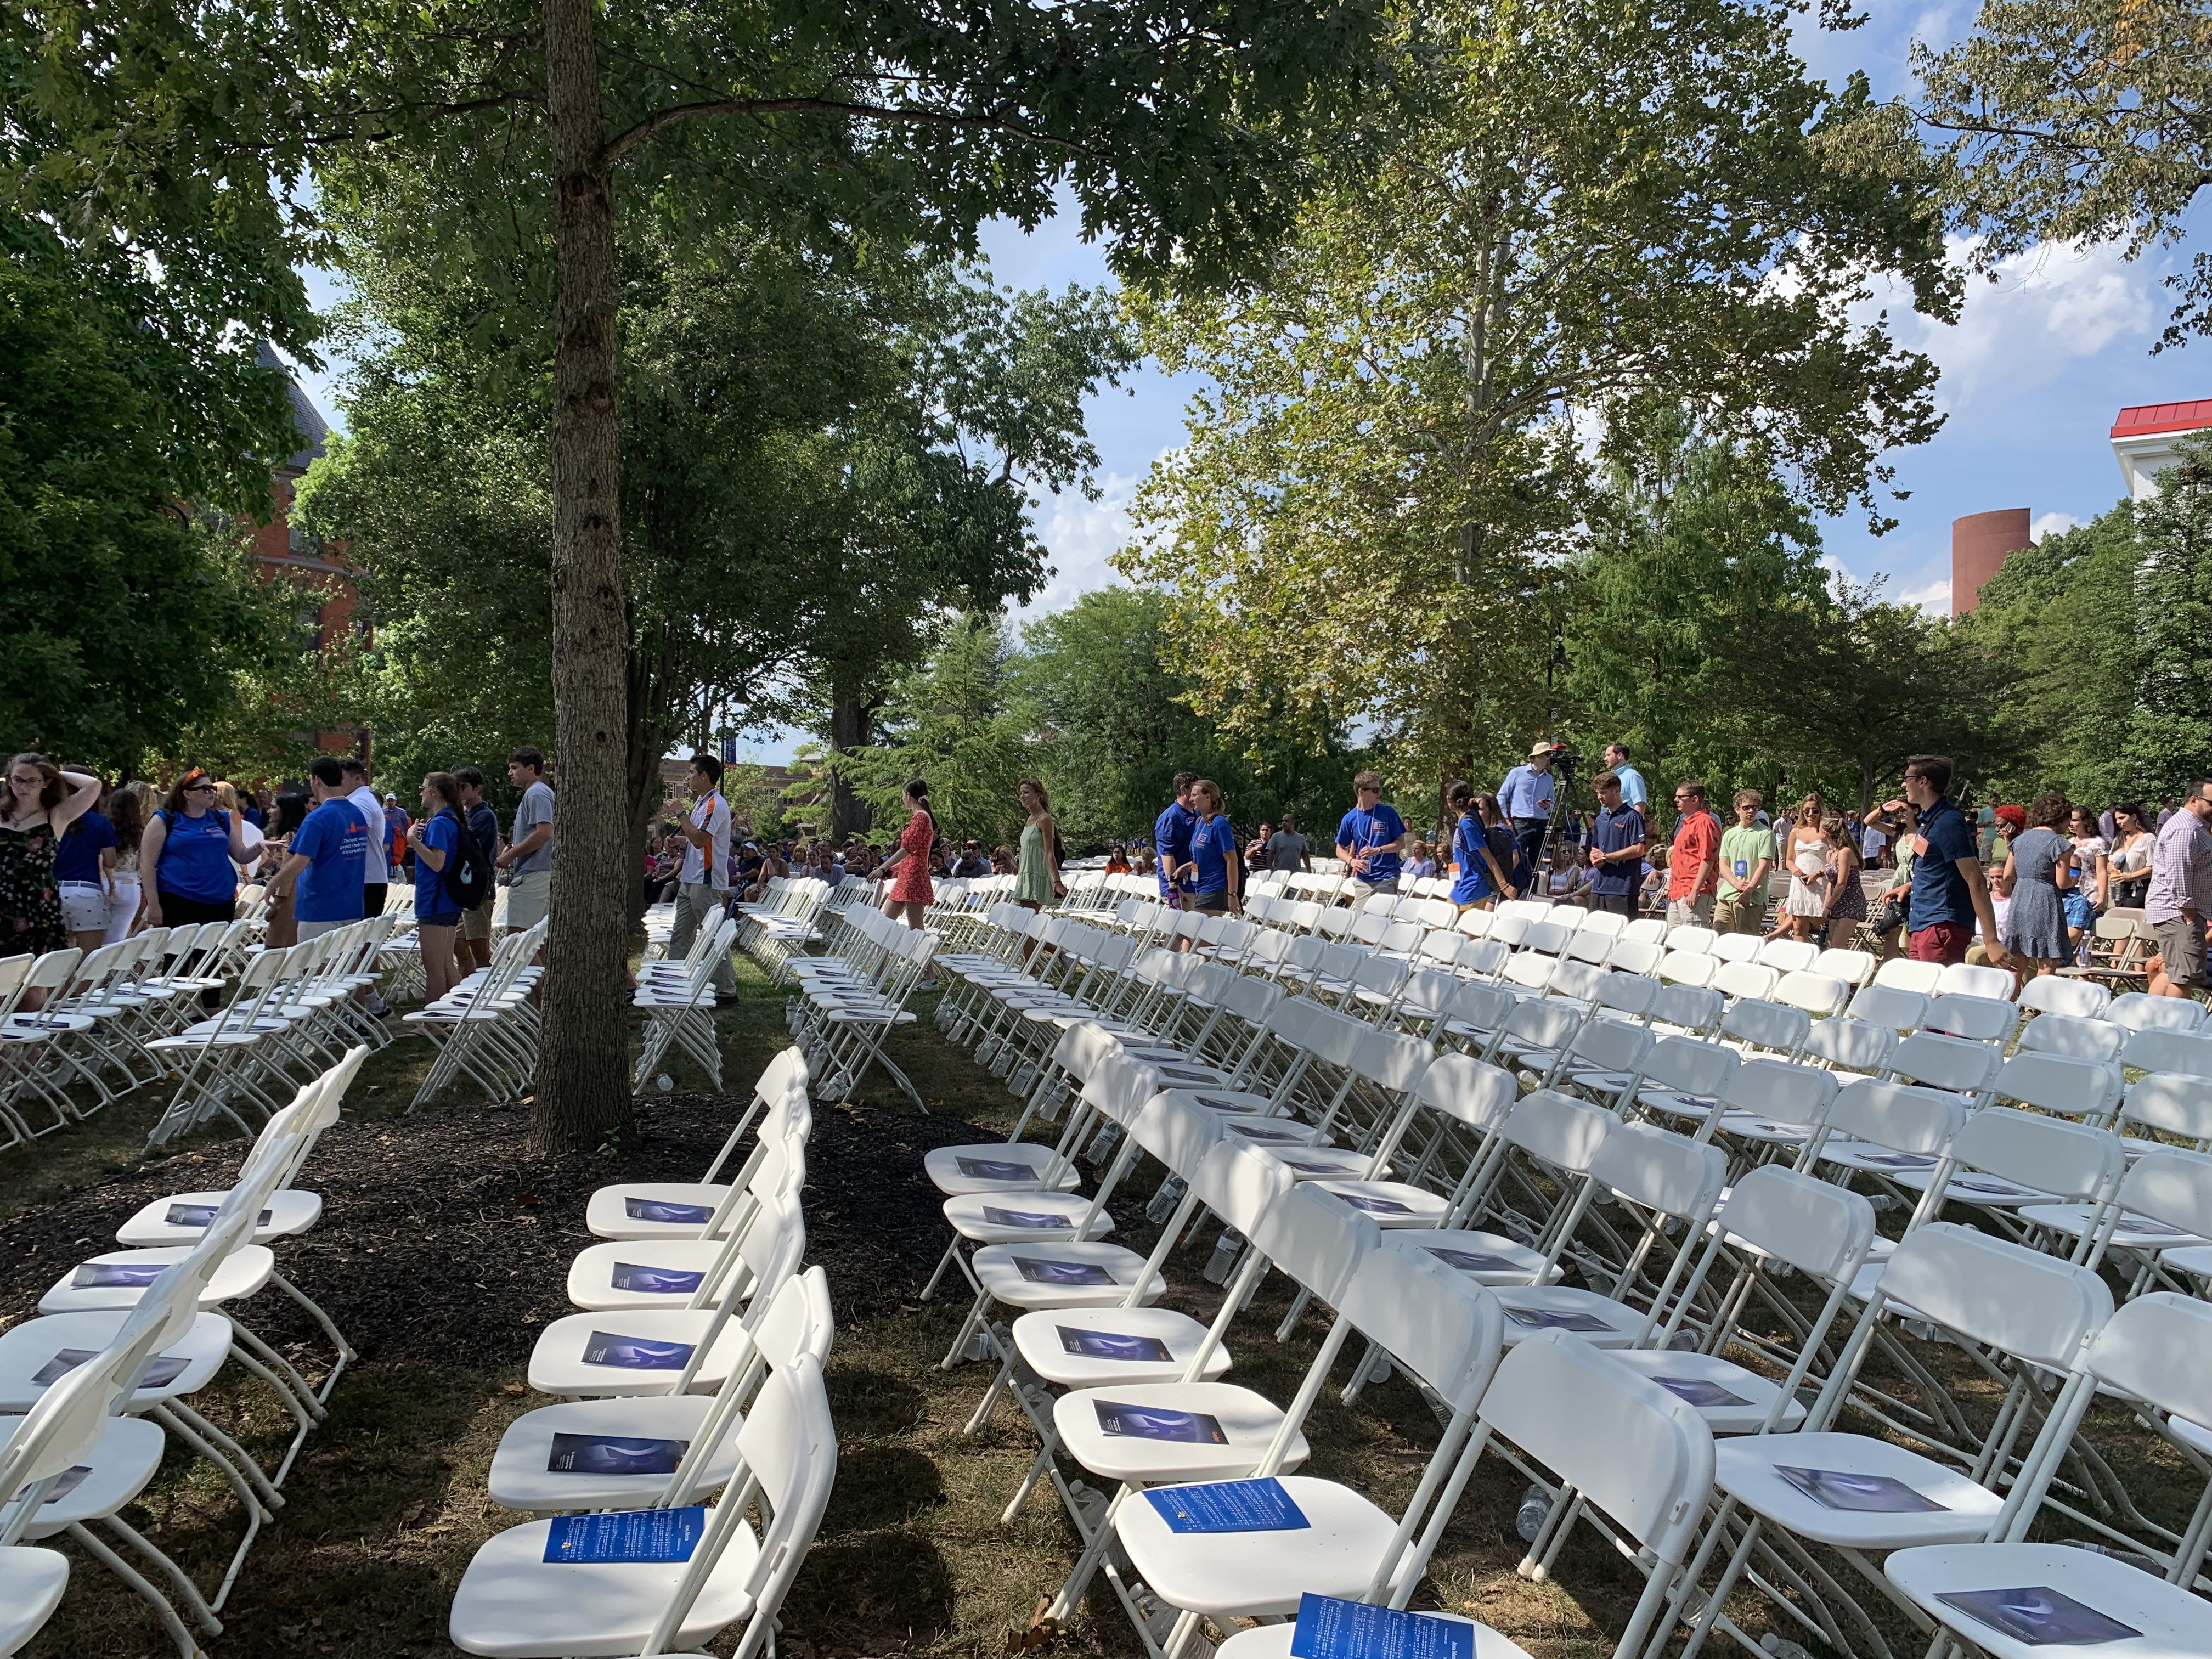 Chairs and programs await the Class of 2023 and their families at the 2019 Opening Convocation ceremony (Photo Nicole DeJacimo/The Gettysburgian).